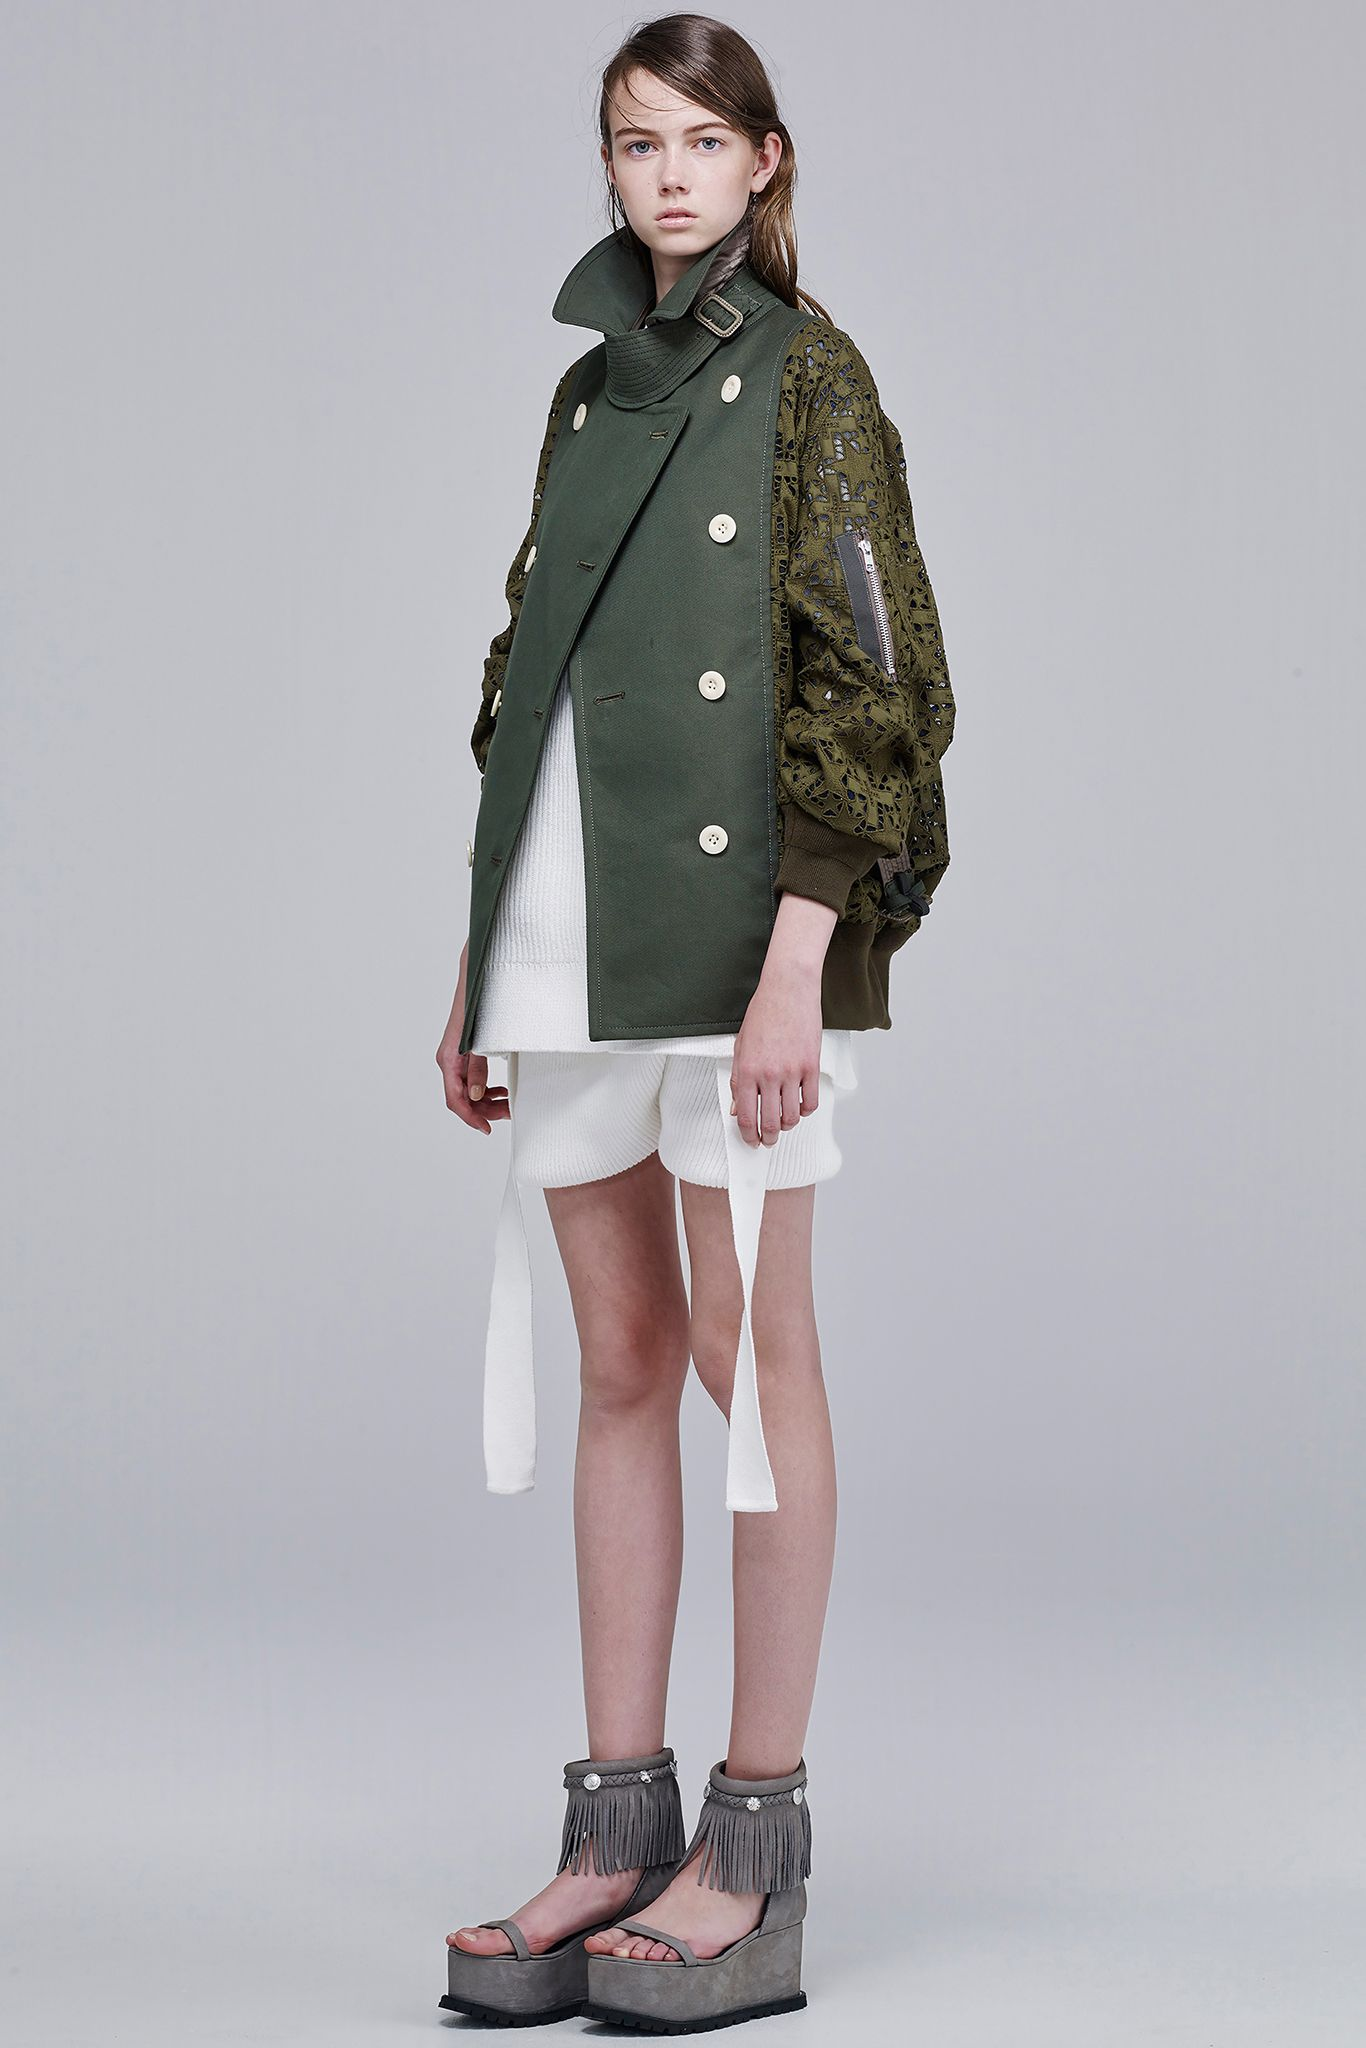 Sacai Resort 2016 - Collection - Gallery - Style.com  Sacai definitely has the coolest outerware we've seen for resort 2016  http://www.style.com/slideshows/fashion-shows/resort-2016/sacai/collection/22